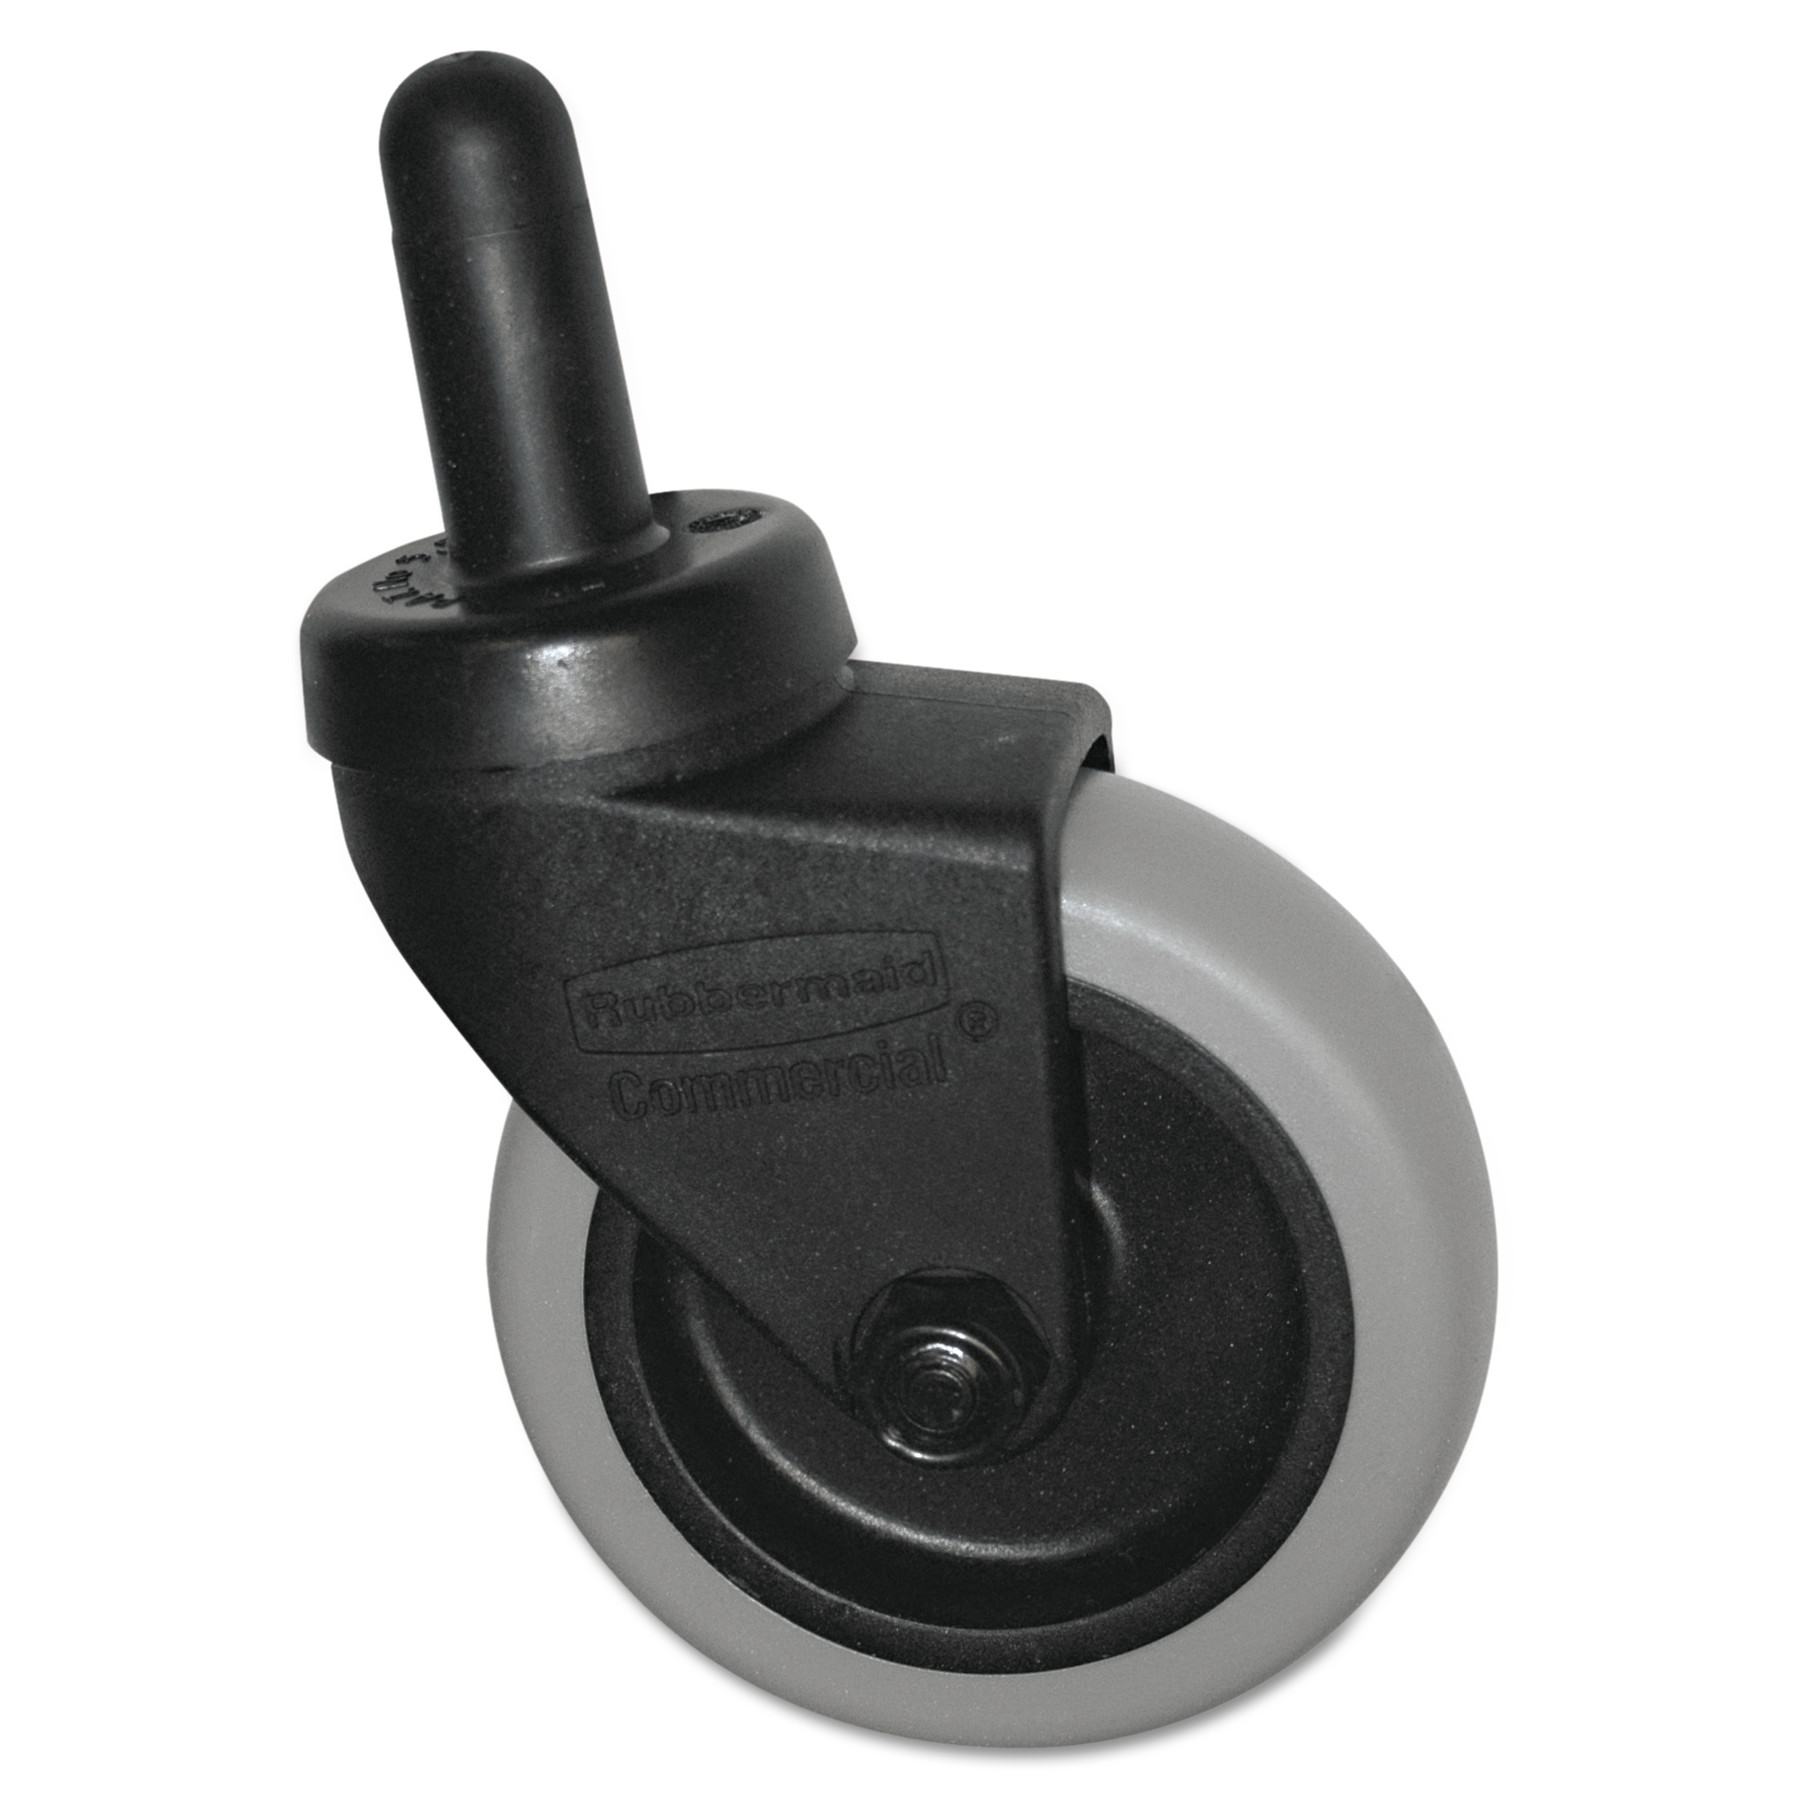 "Rubbermaid Commercial Replacement Swivel Bayonet Casters, 3"" Wheel, Thermoplastic Rubber, Black"